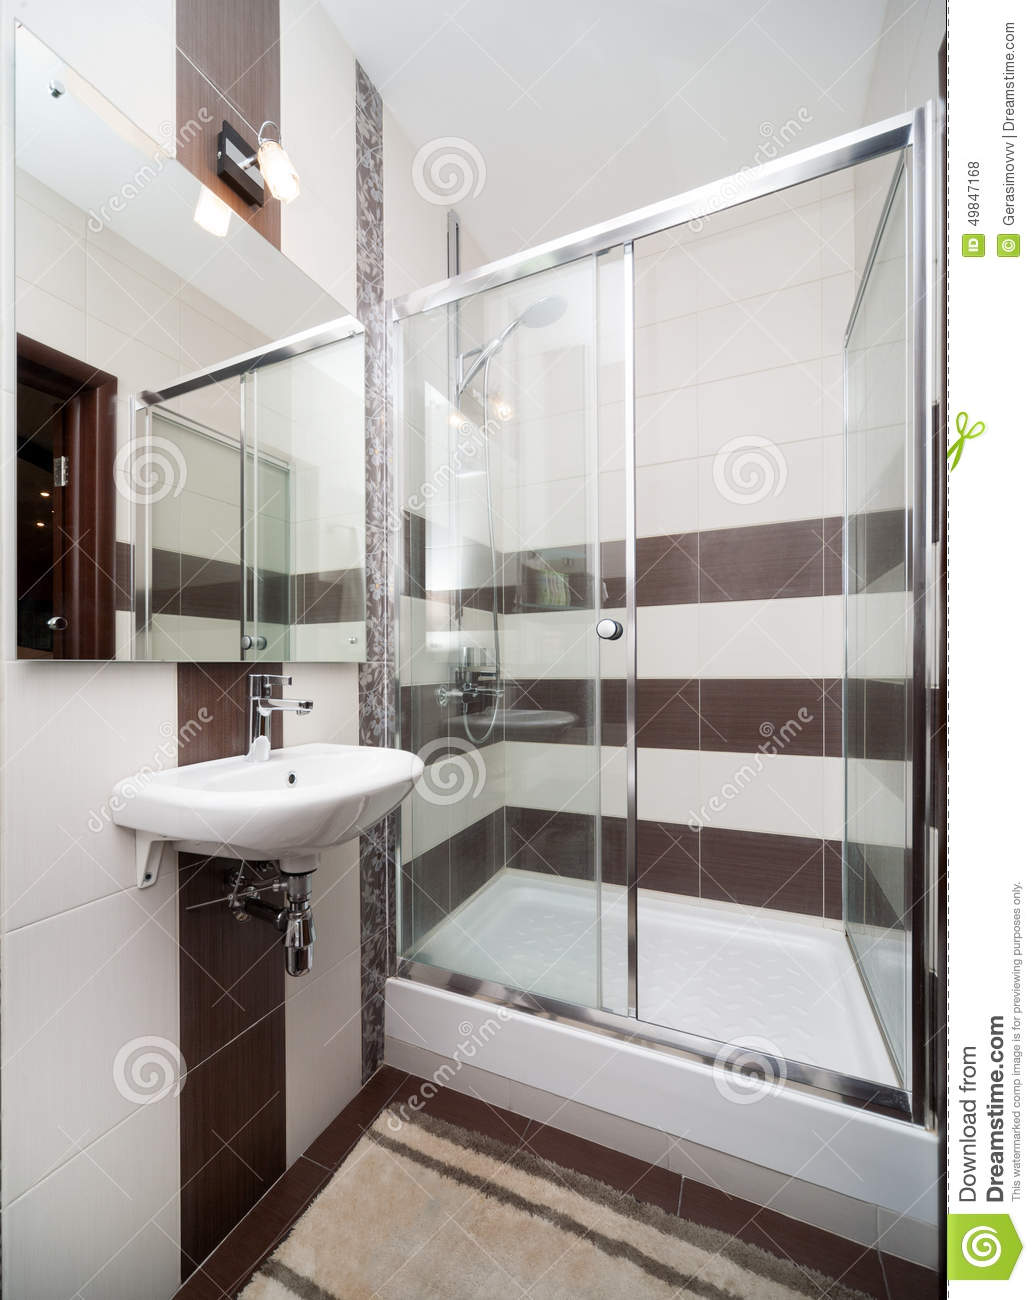 Castorama Salle De Bain Cooke And Lewis ~ Modern Small Bathroom Stock Photo Image Of Washroom 49847168